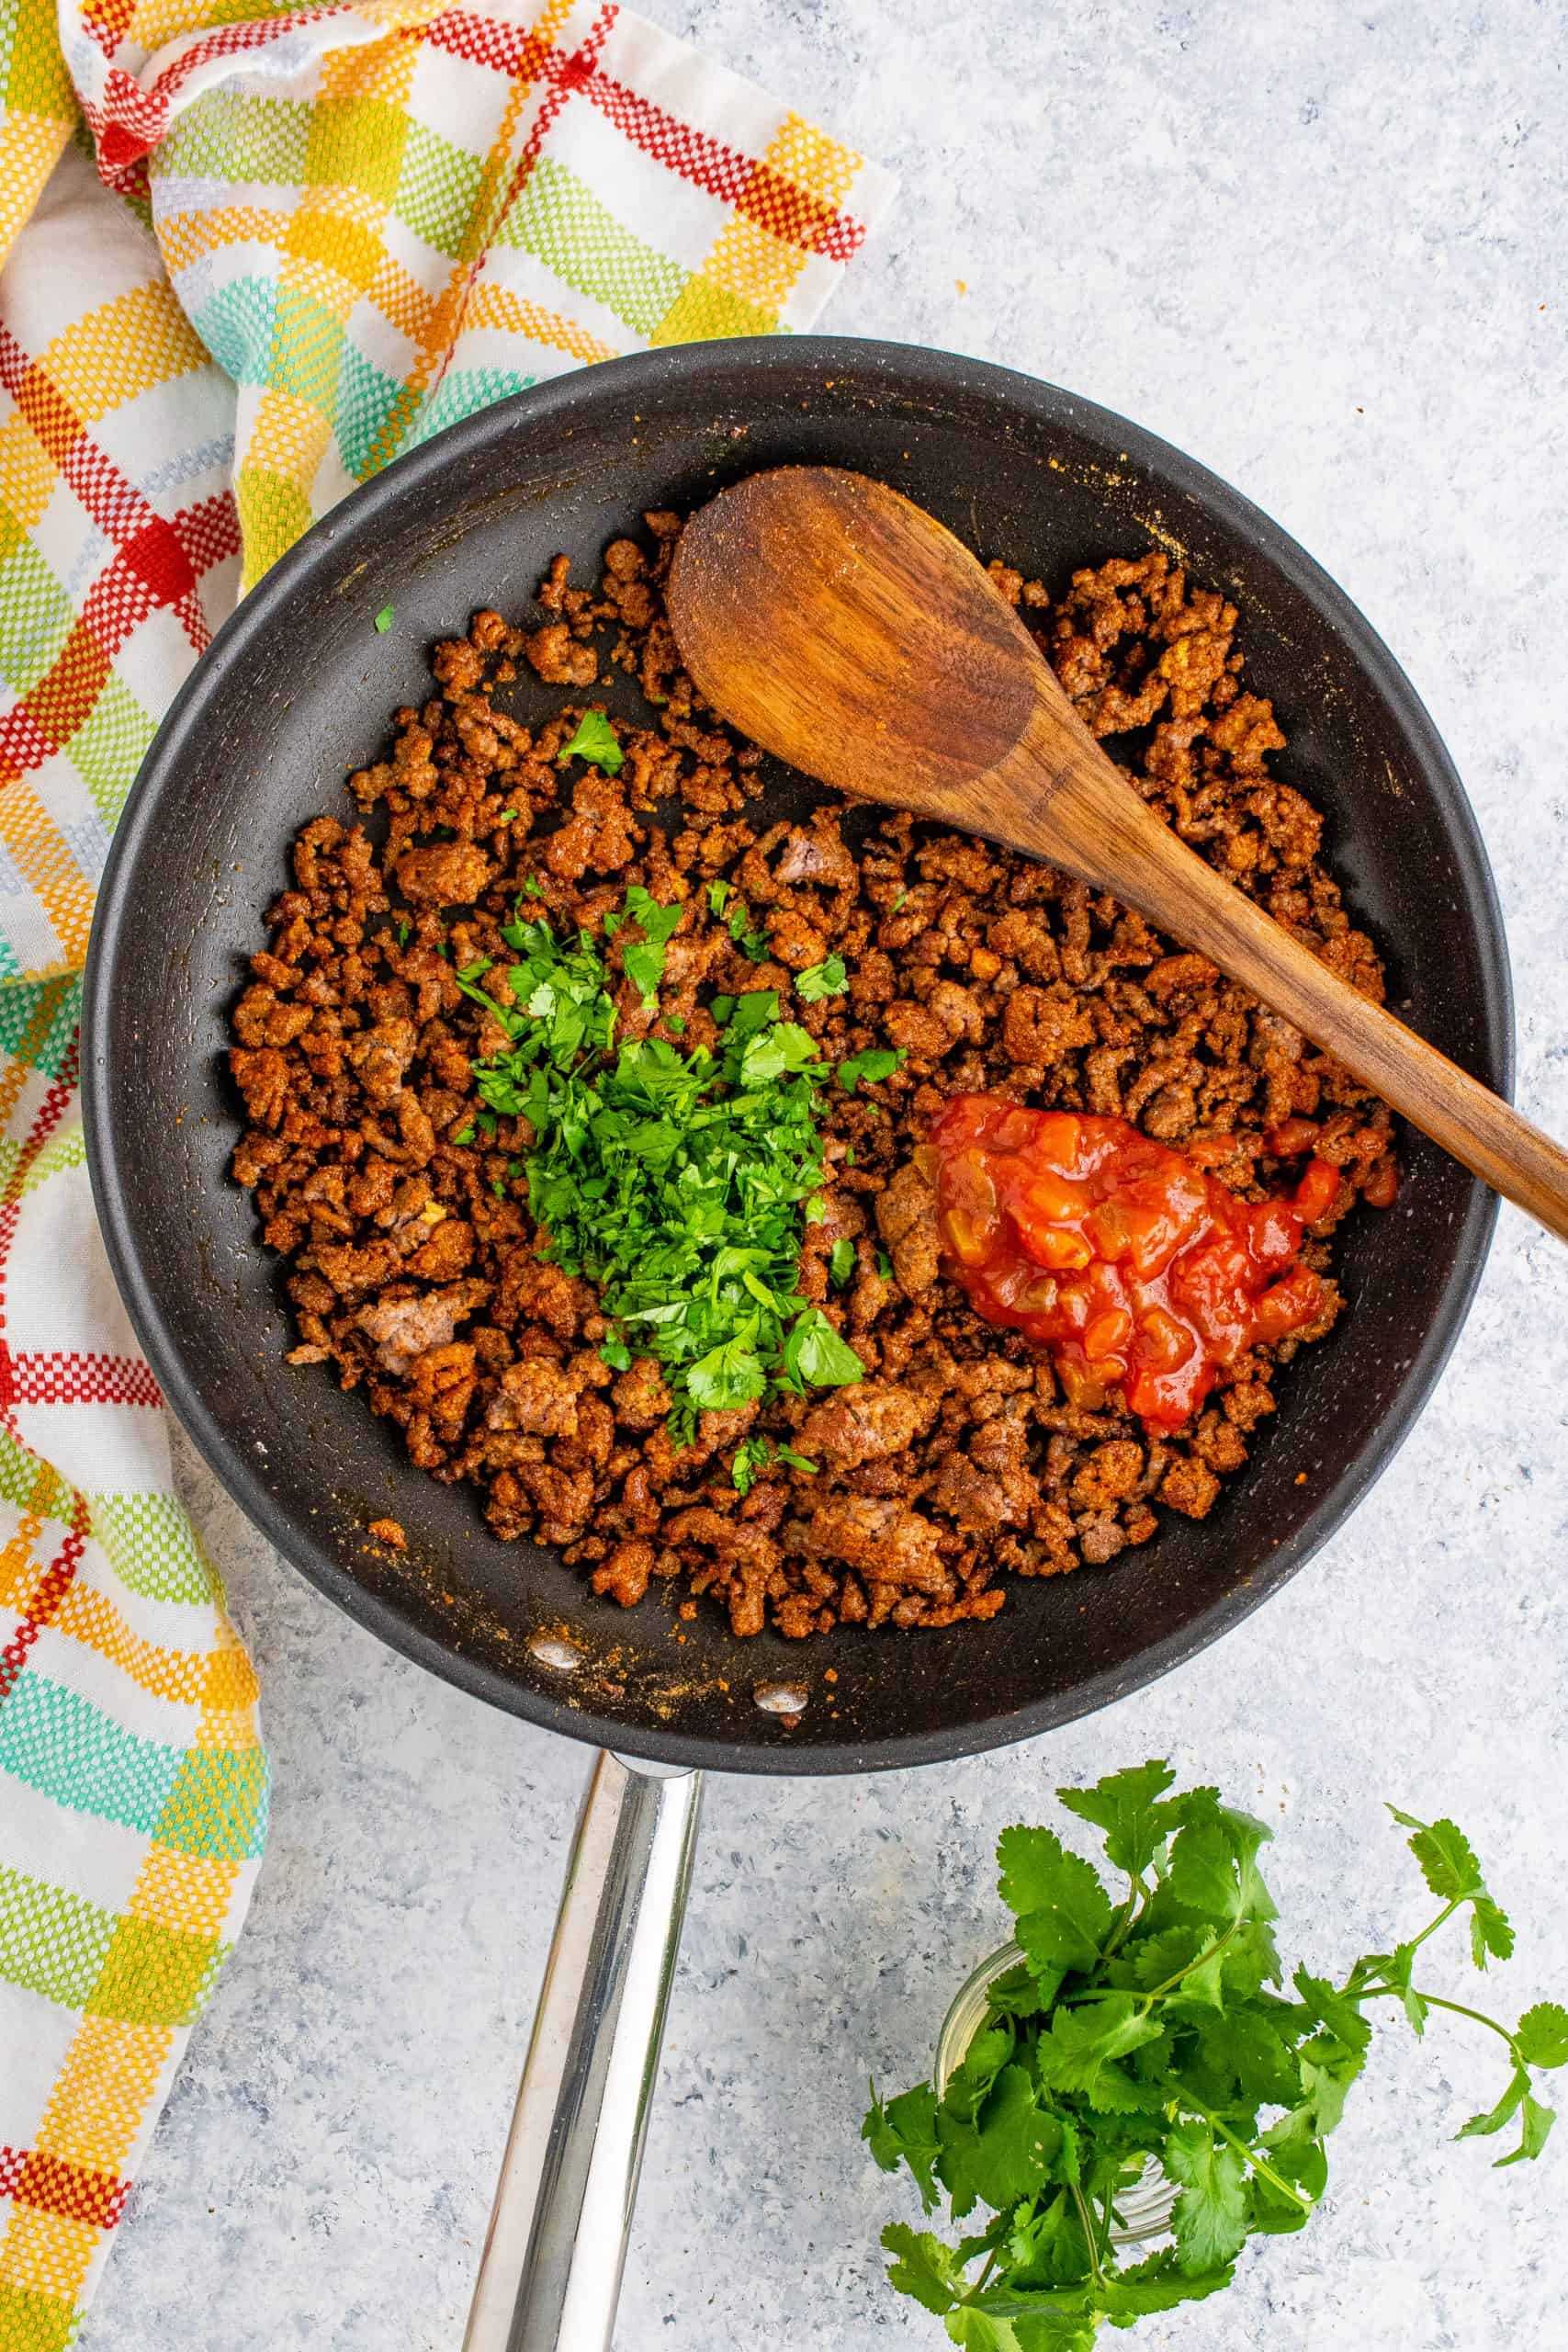 Water, salsa, and cilantro added to ground beef mixture